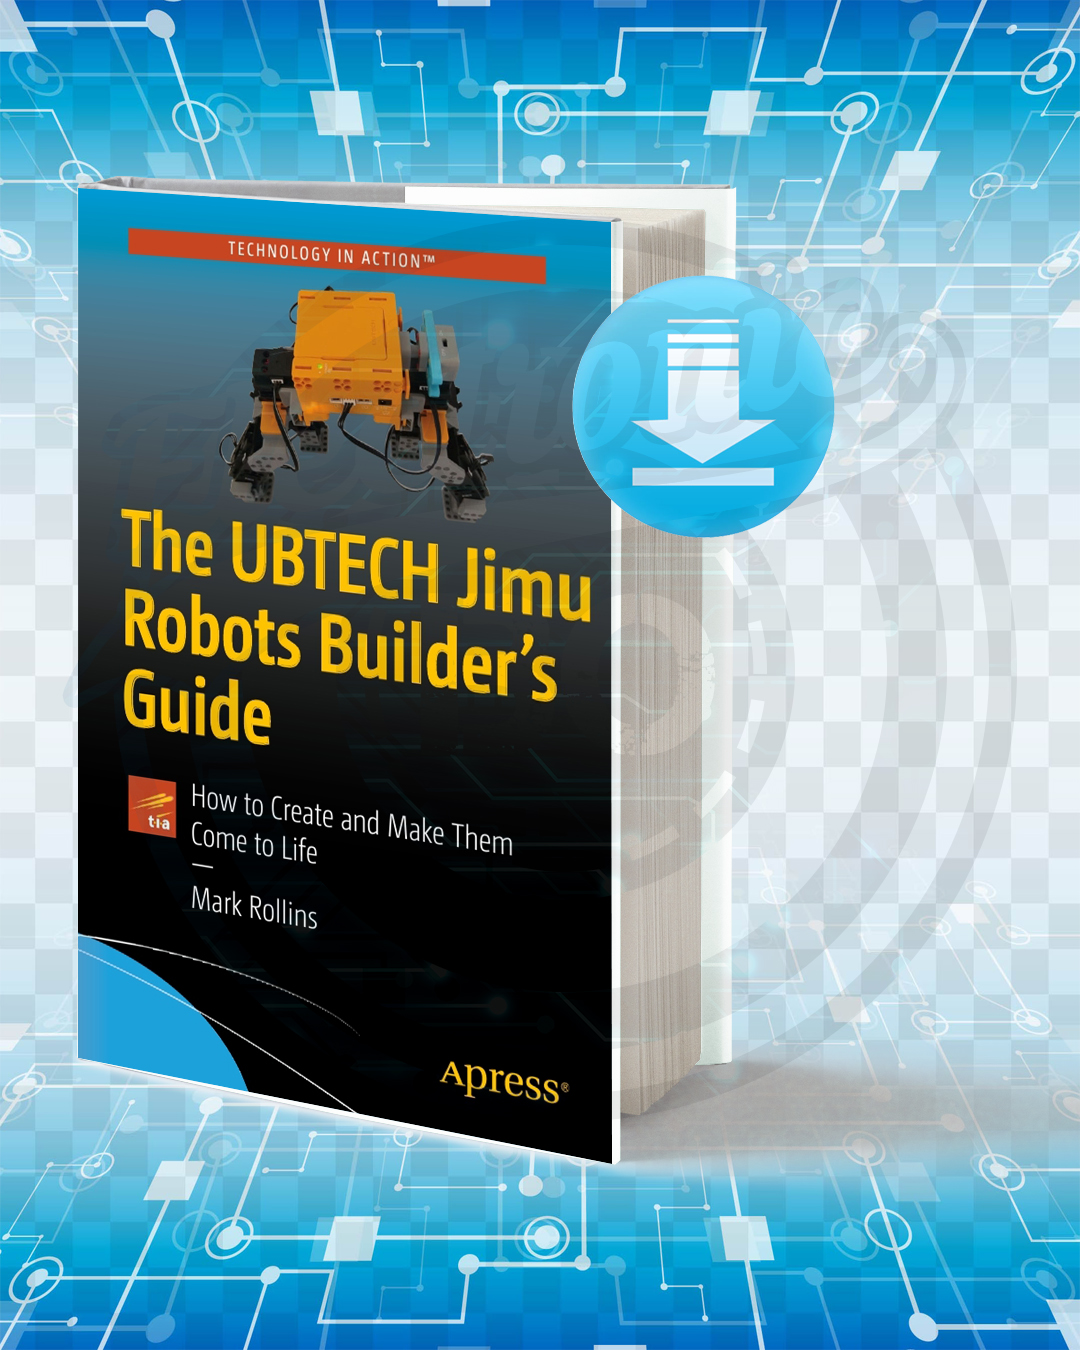 Free Book The UBTECH Jimu Robots Builder's Guide pdf.